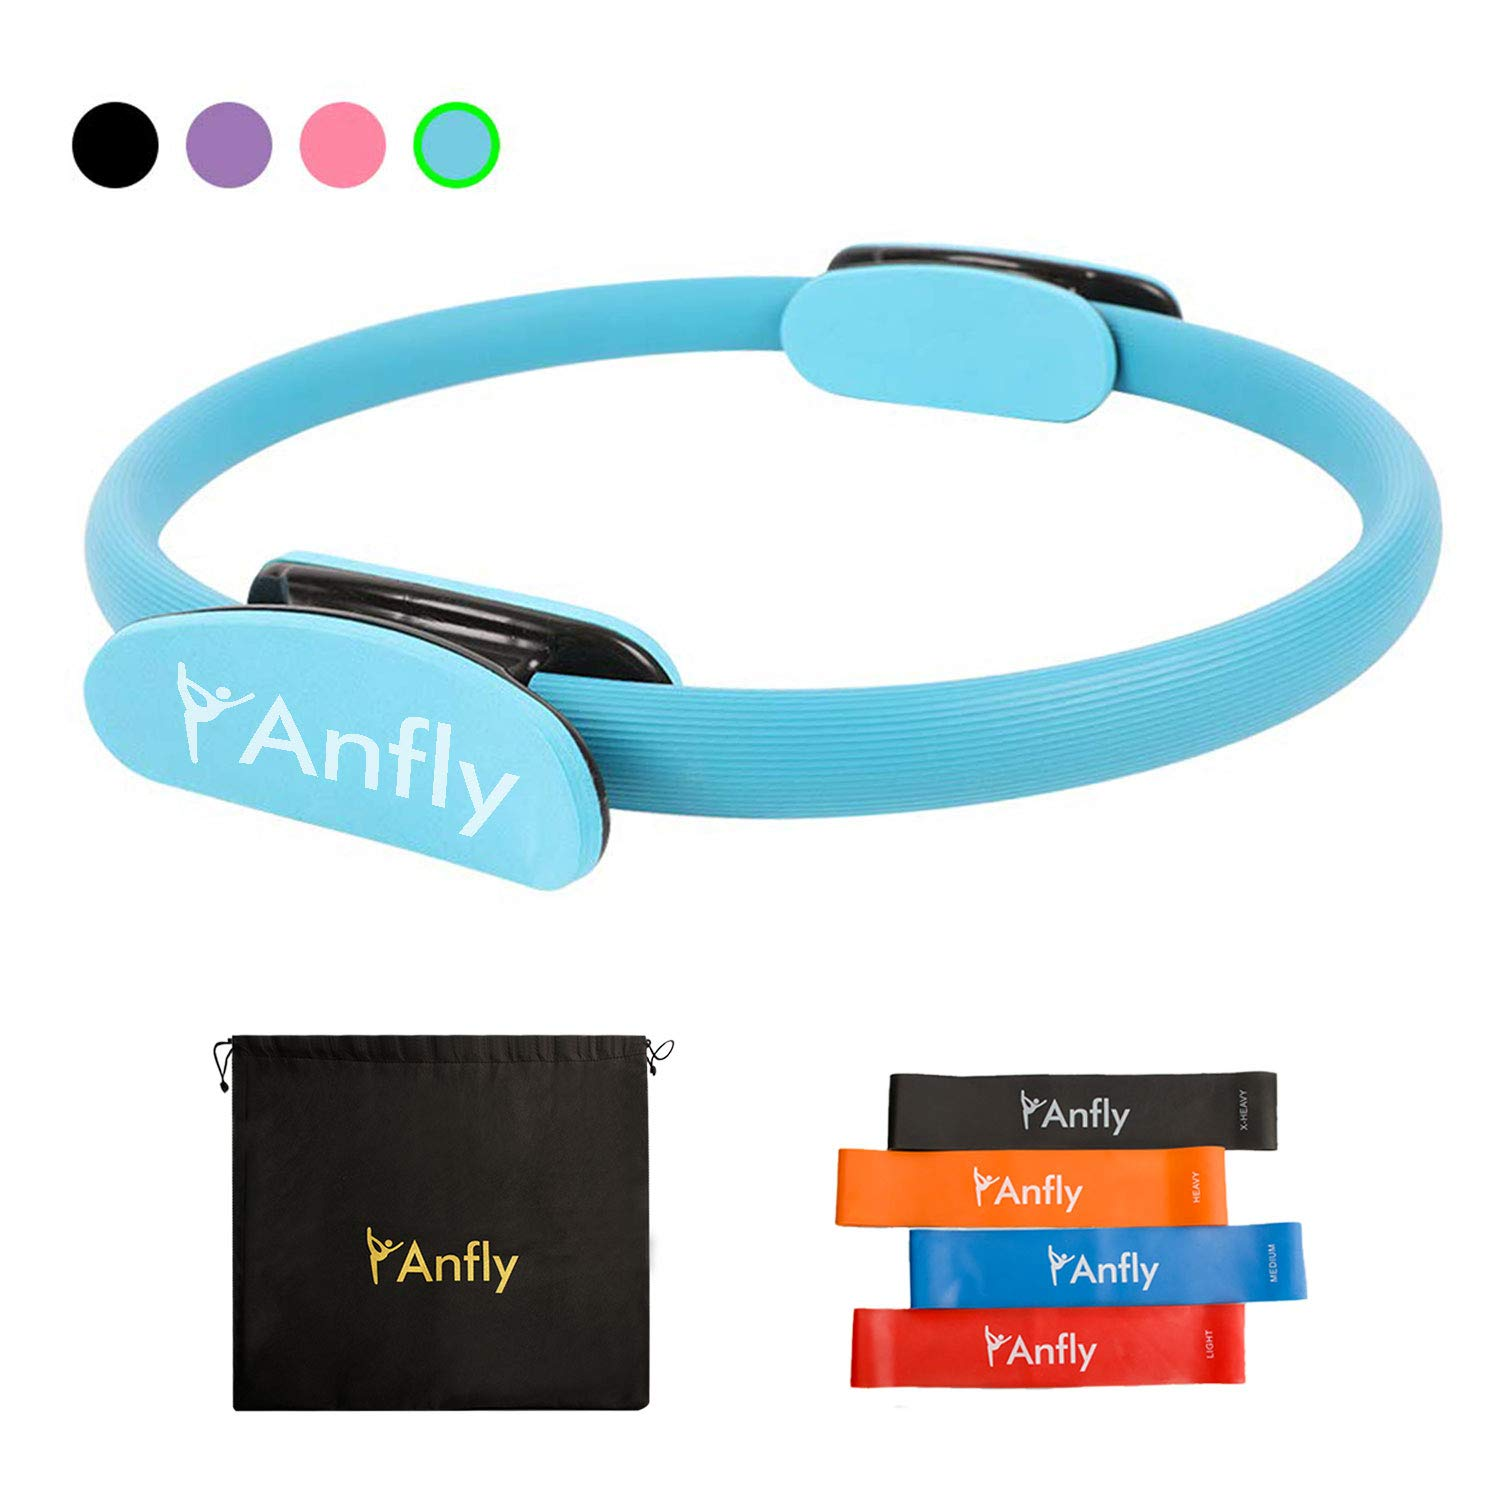 Anfly Pilates Ring - Enough Resistance Pilates Circle with 4 Colors Stretch Straps, Stronger Fitness Exercise Circle Equipments for Full Body Toning, Yoga and Core Strength Training Easy to Control by Anfly